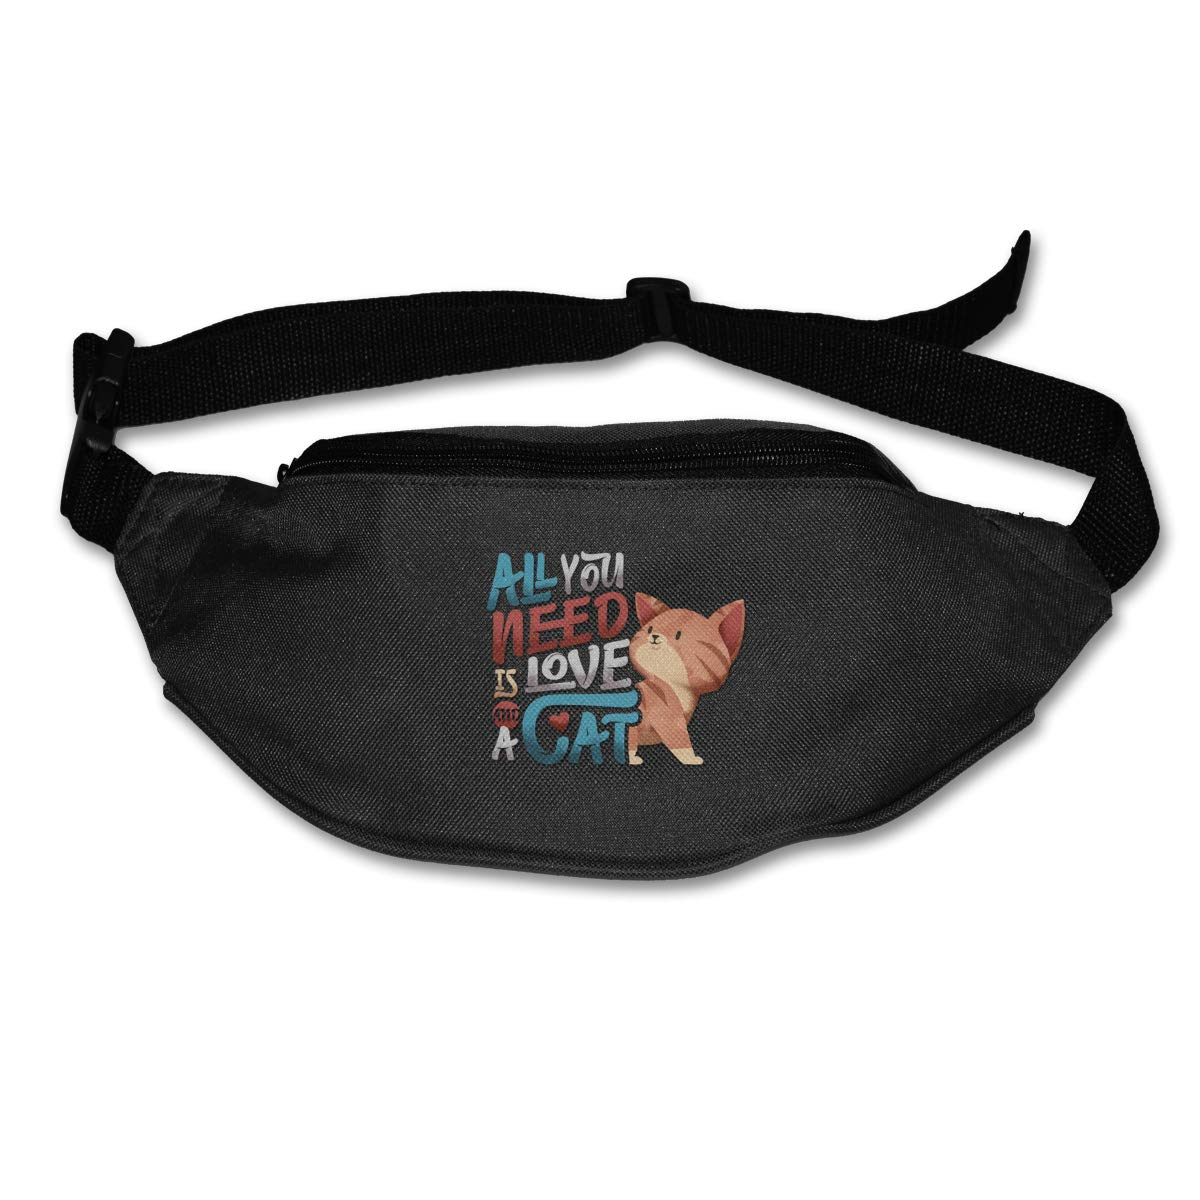 All You Need Is Love A Cat Sport Waist Bag Fanny Pack Adjustable For Travel